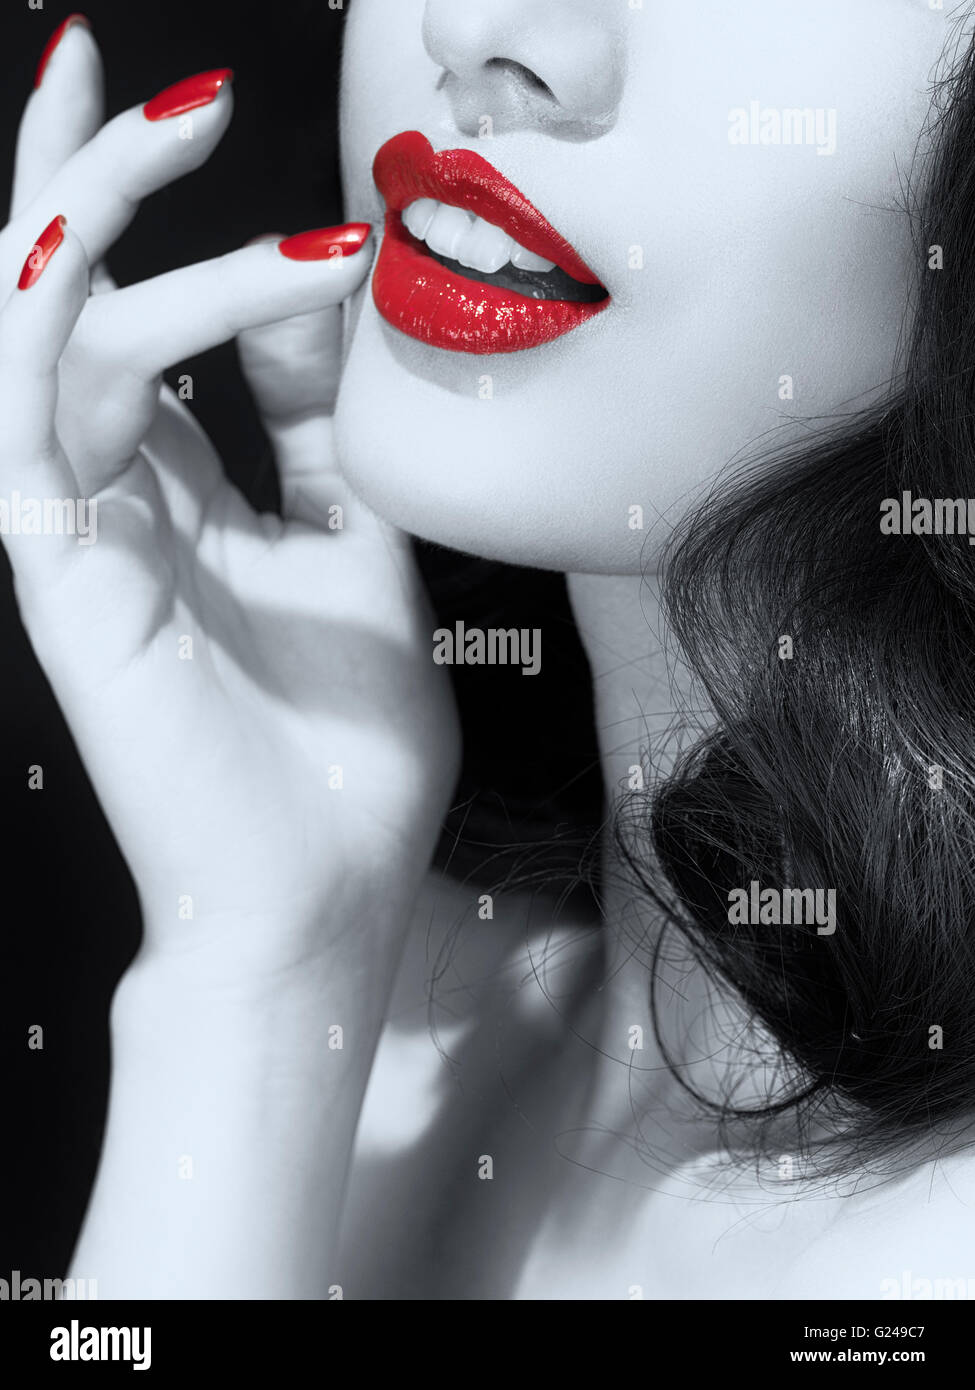 Woman's mouth with bright red lipstick and nail varnish - Stock Image